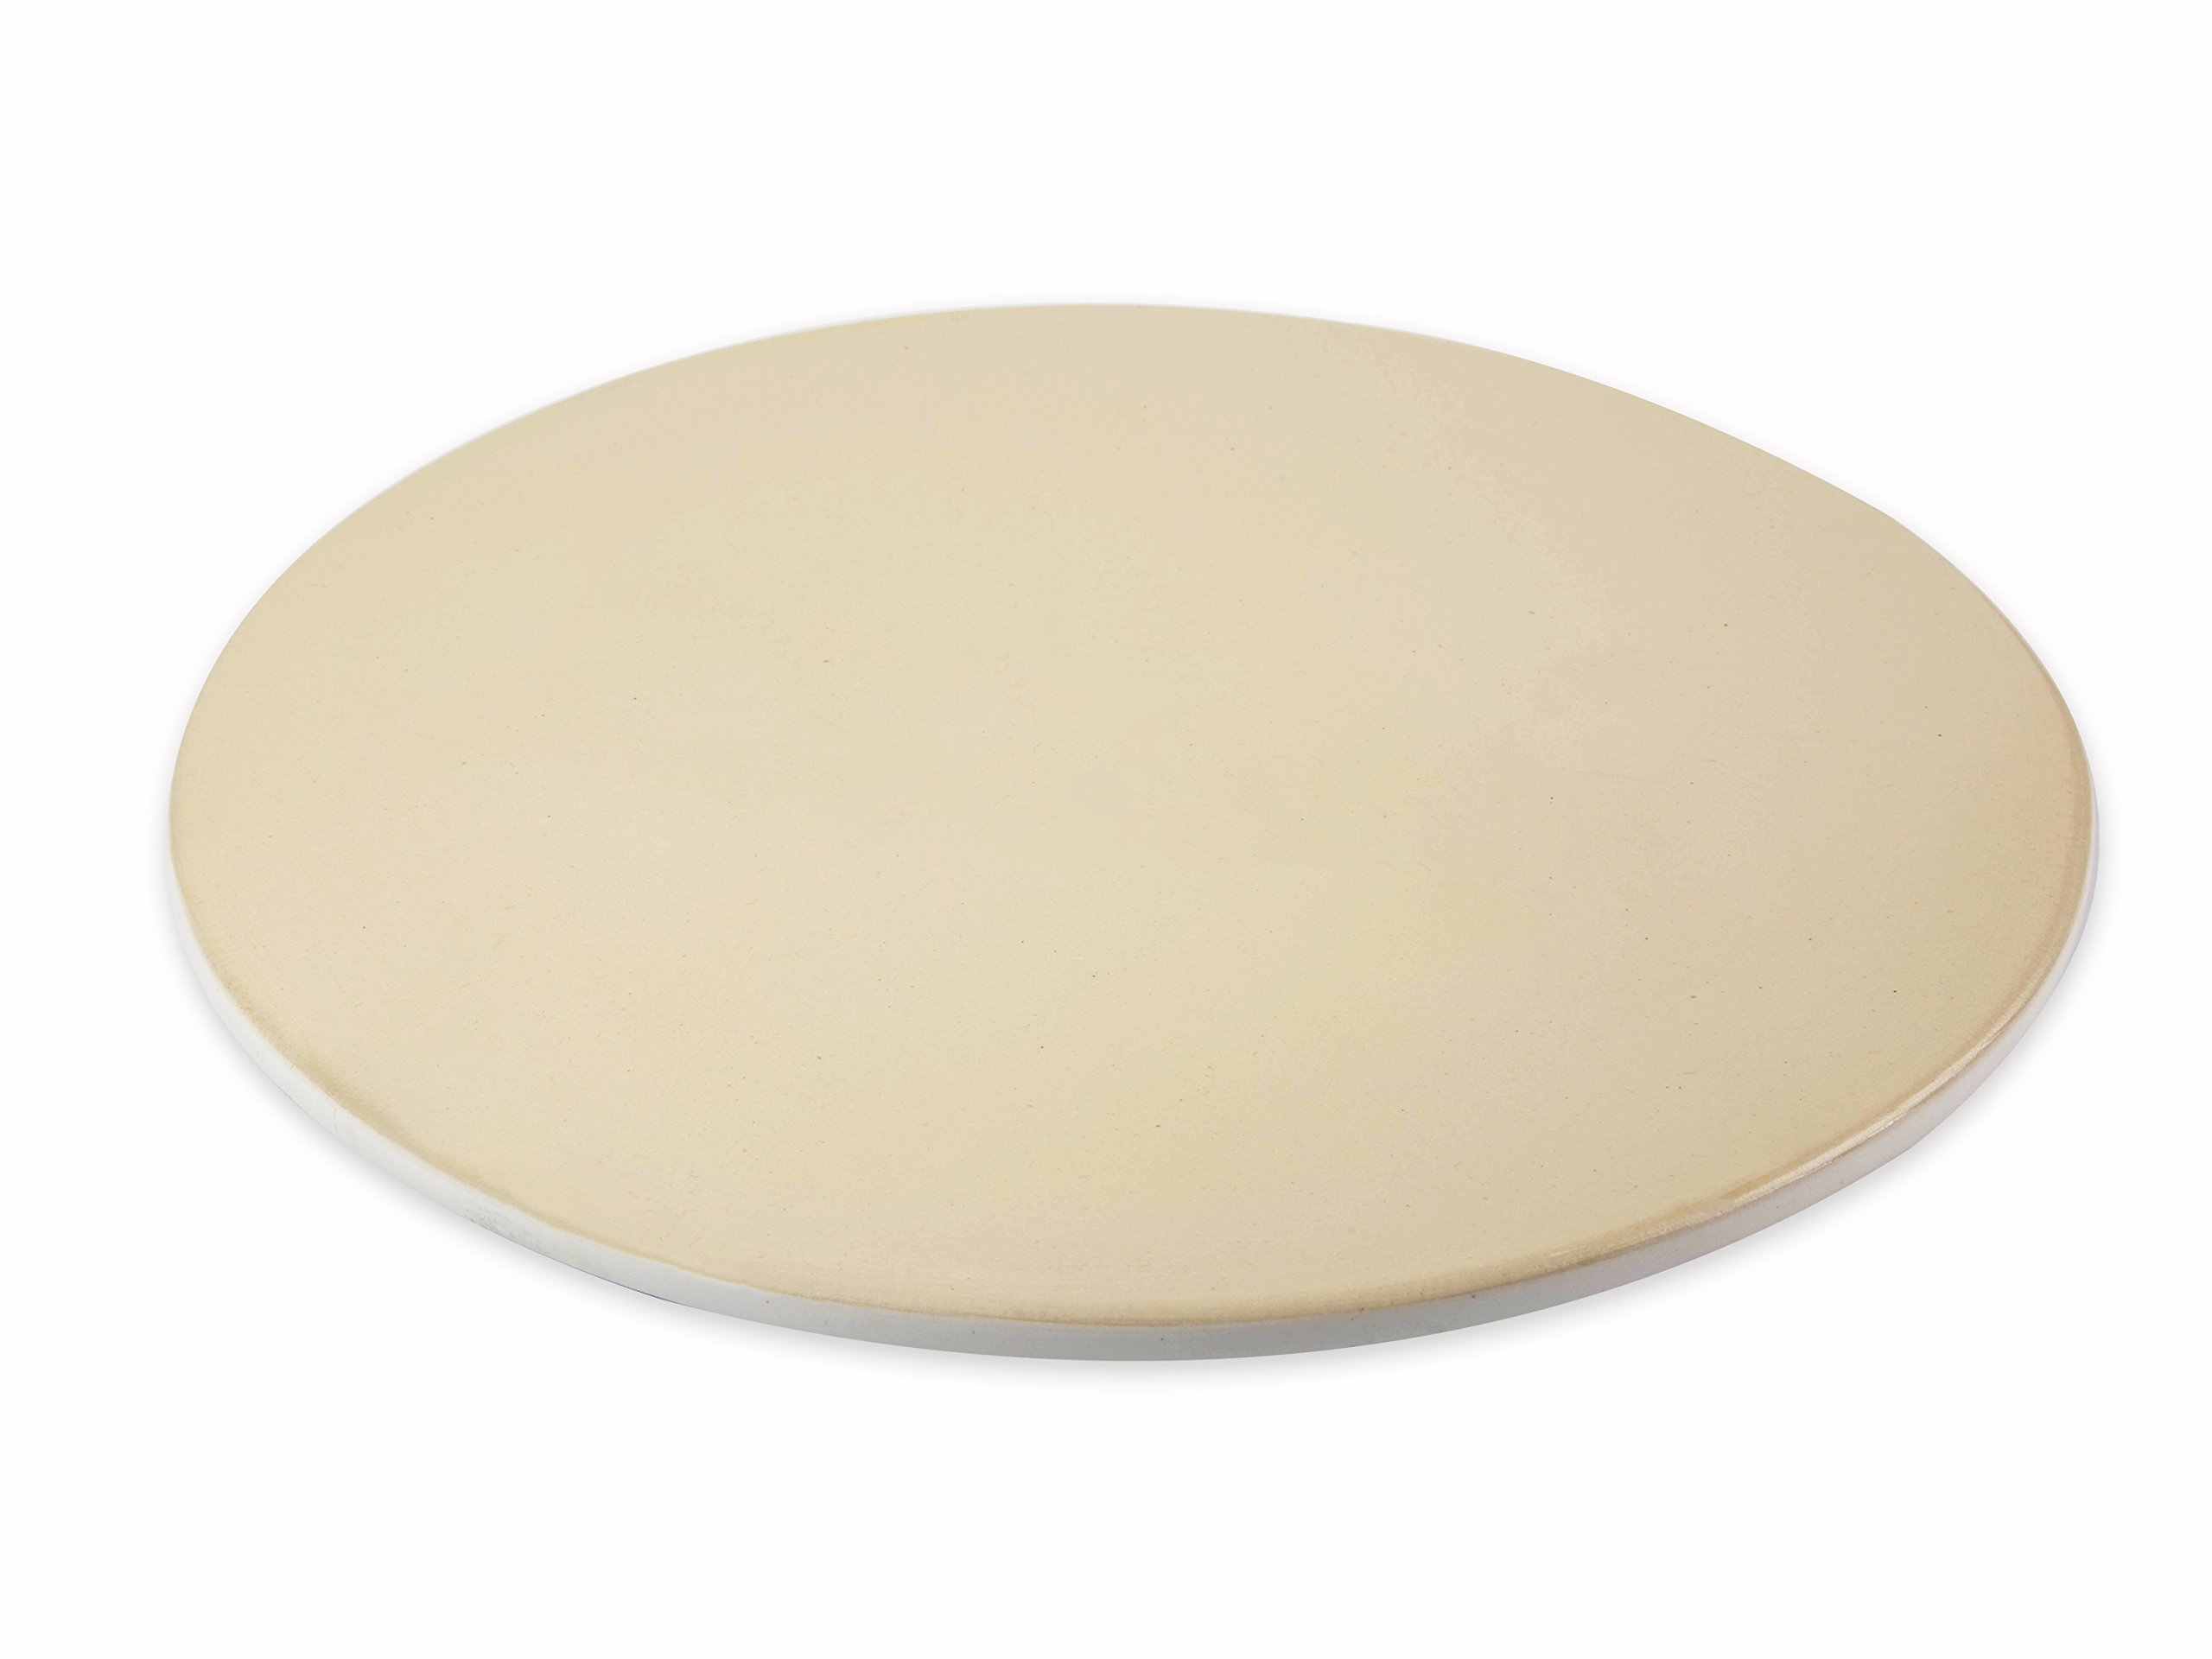 USA Pan Bakeware Handmade Oven-Safe Nonstick Round Bread and Pizza Stone for Oven, 14-Inch by USA Pan